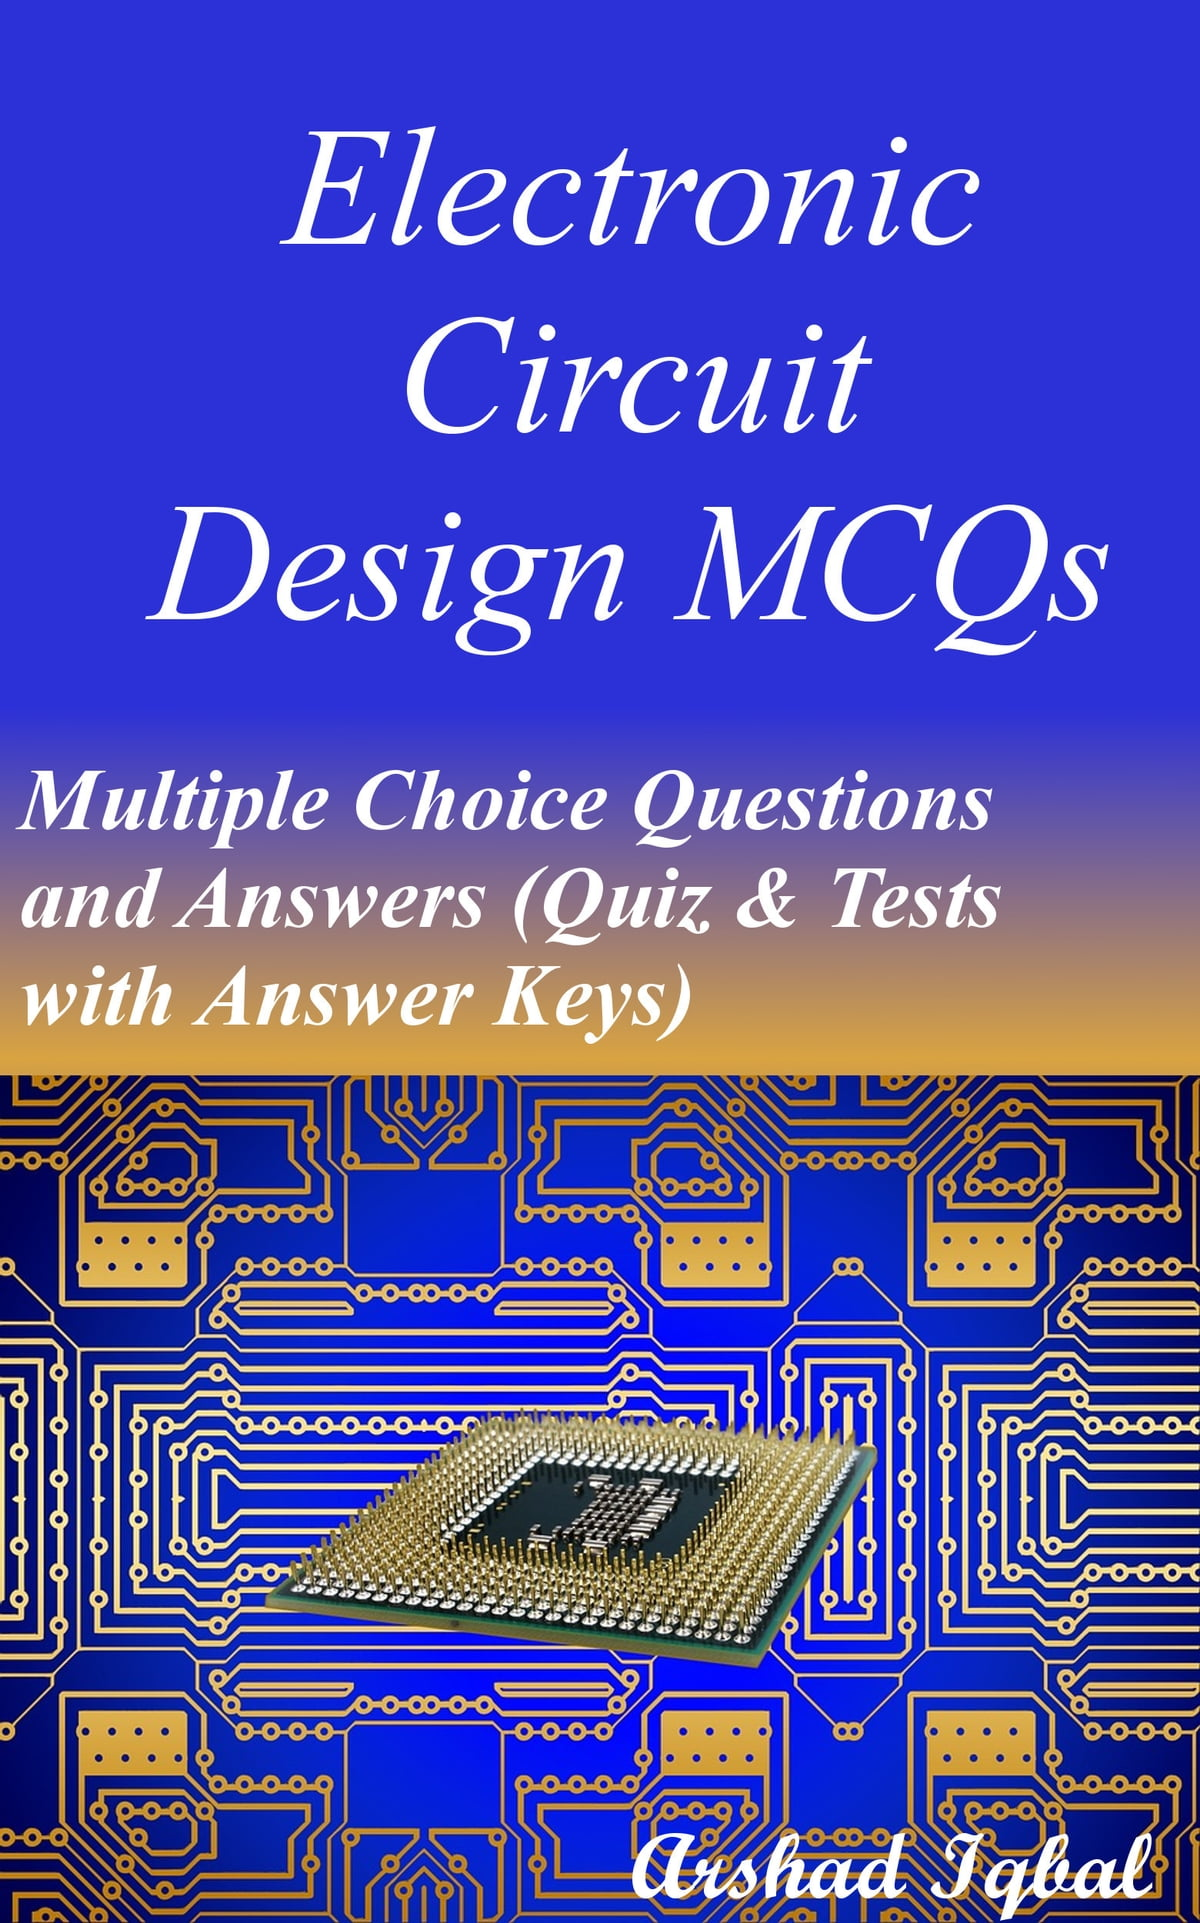 Electronic Circuit Design Mcqs Multiple Choice Questions And Simulator Online Answers Quiz Tests With Answer Keys Ebook Von Arshad Iqbal 9781310860607 Rakuten Kobo